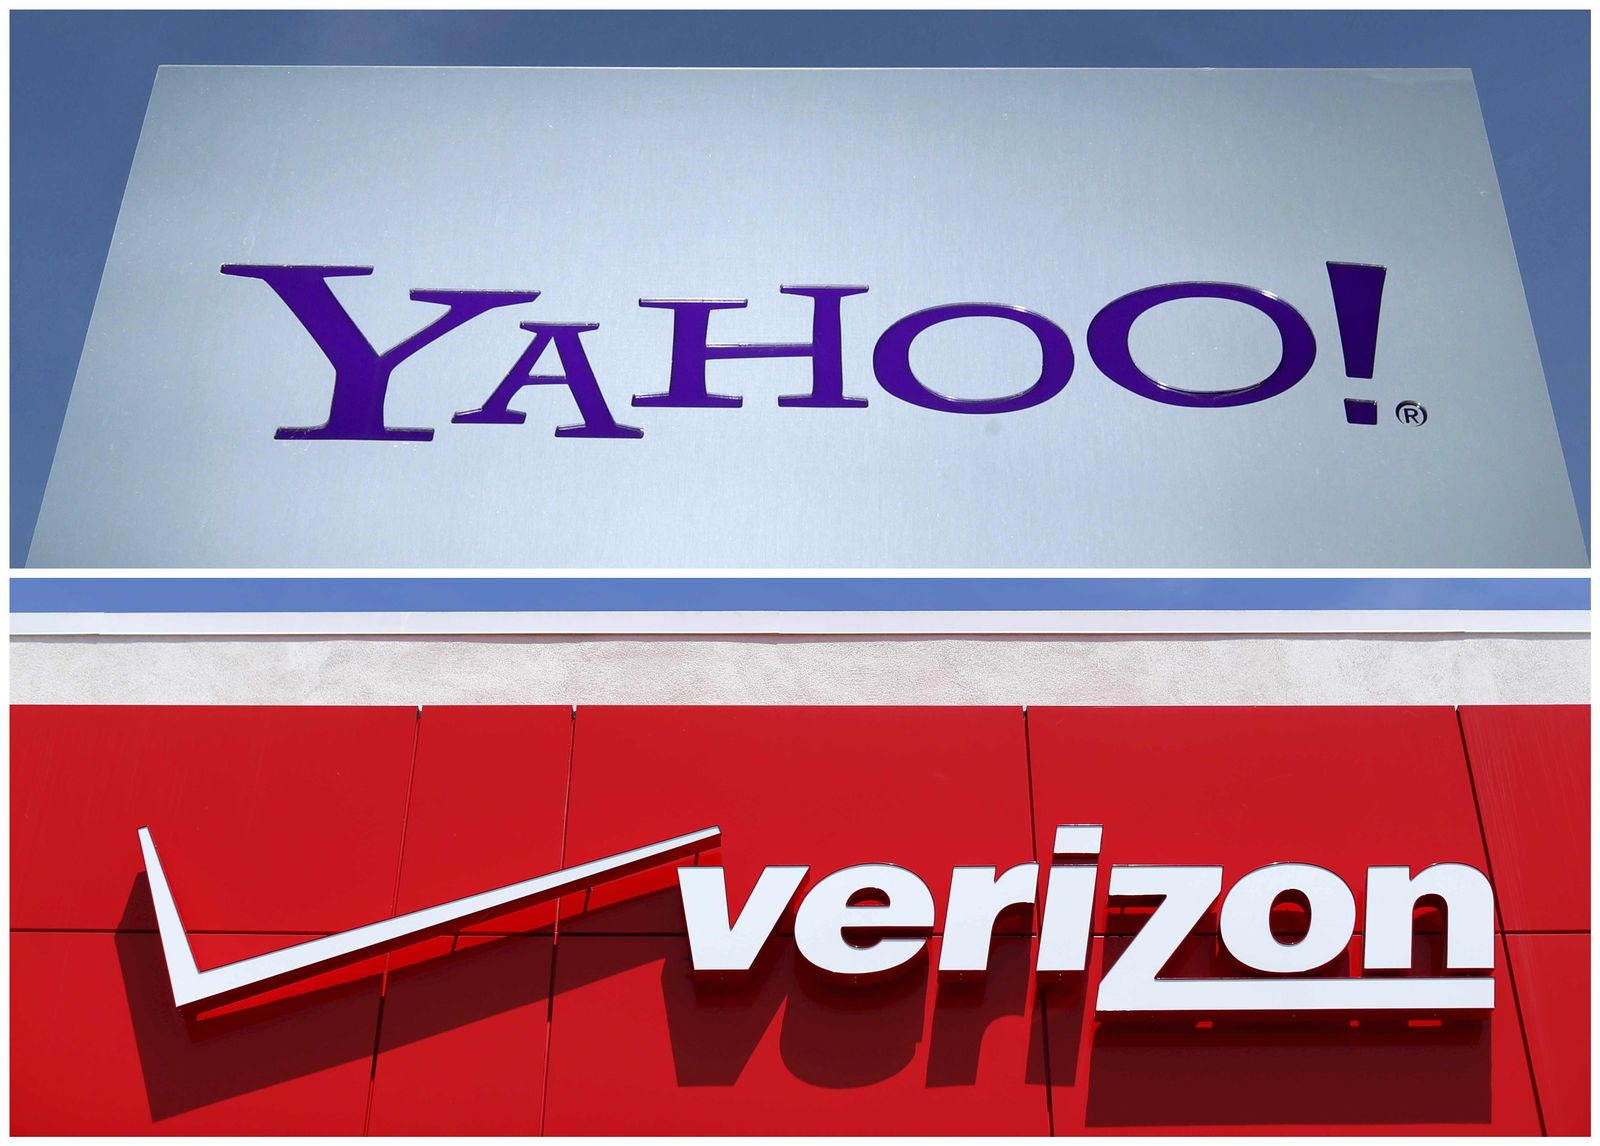 VERIZON-YAHOO/